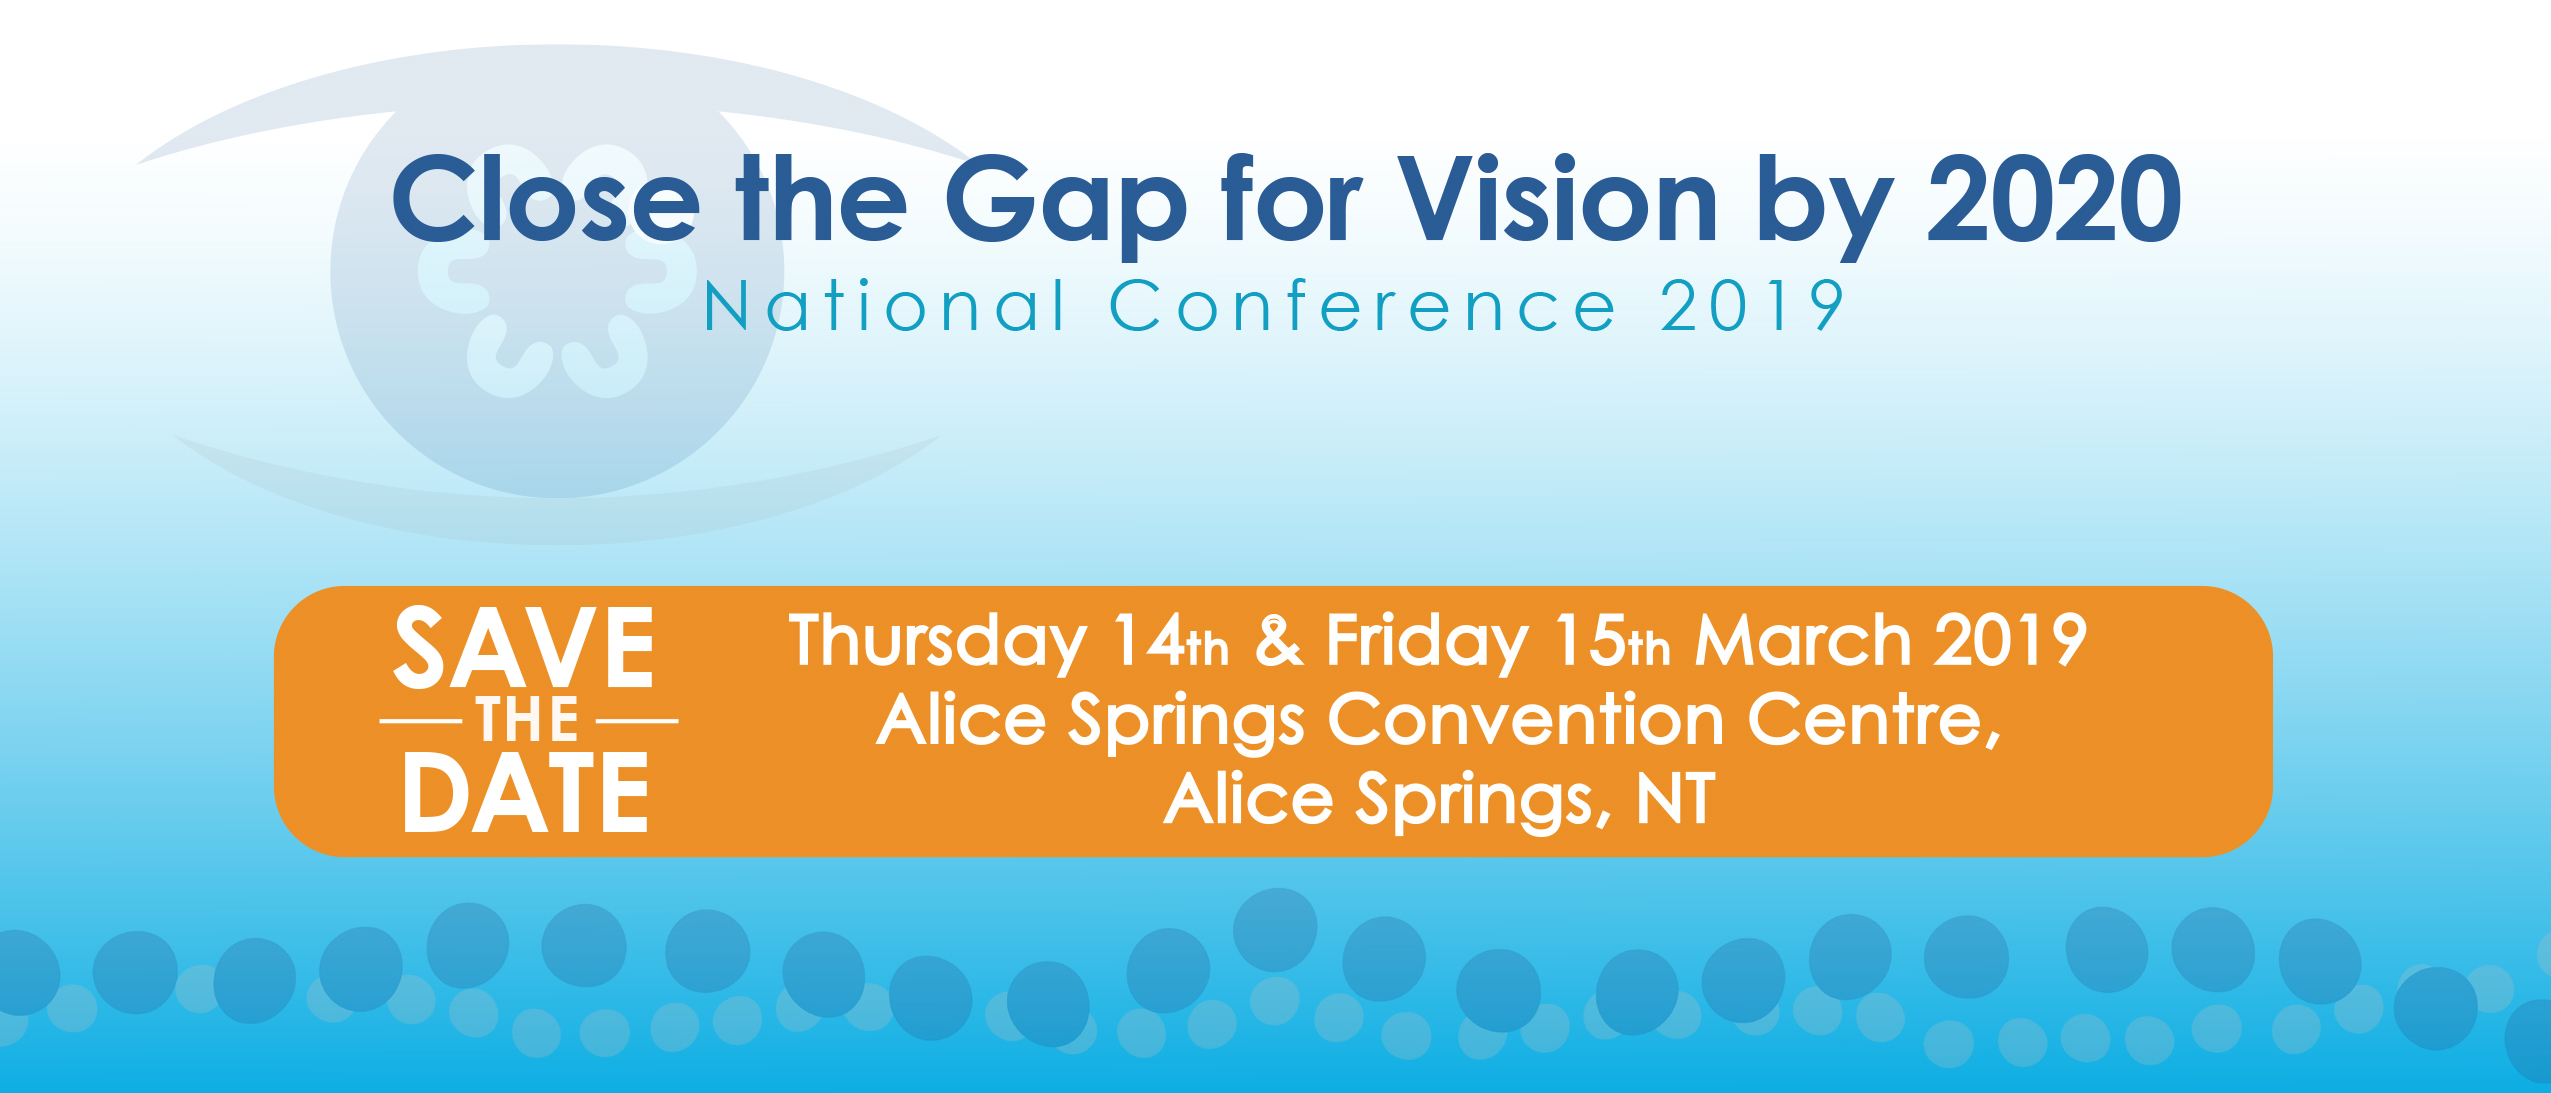 Save the date: Close the Gap for Vision by 2020 National